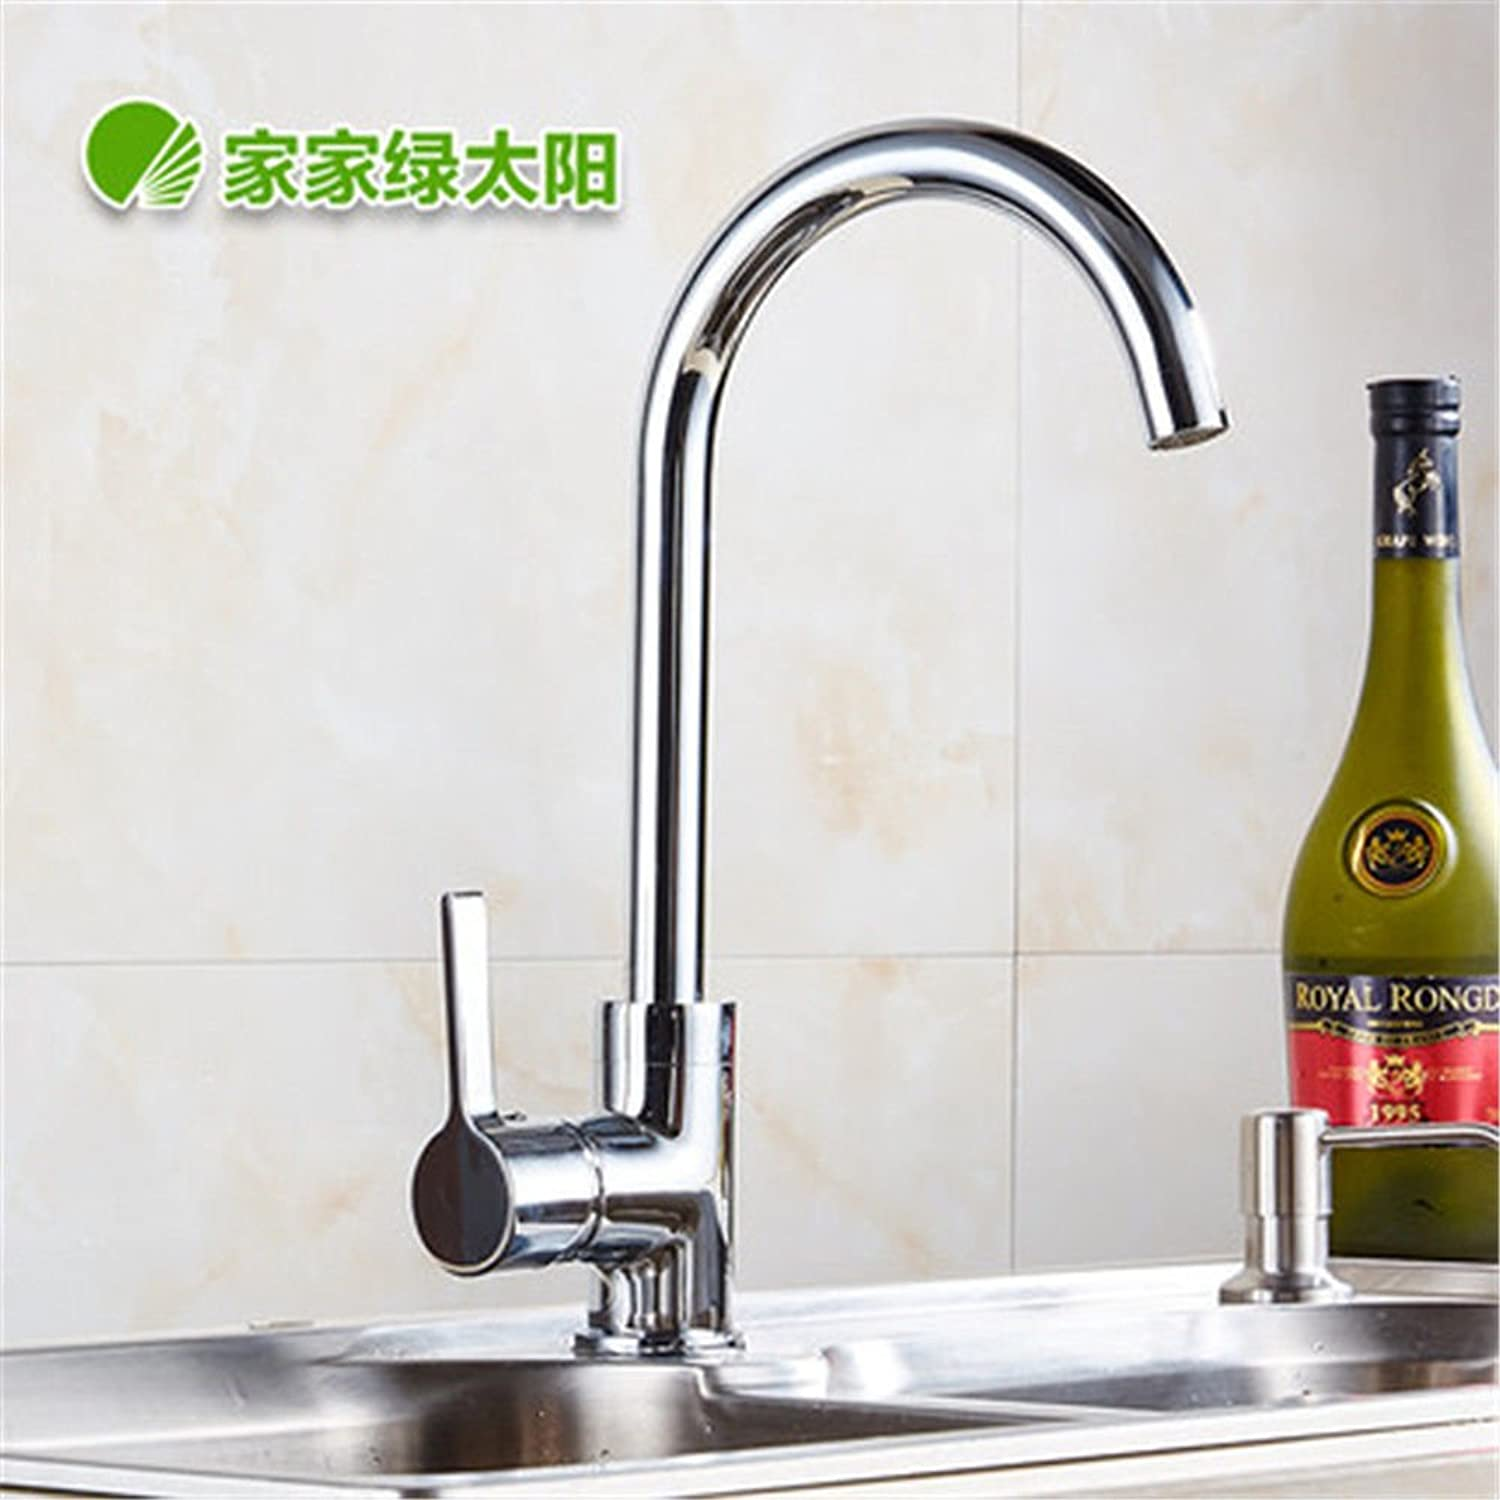 Commercial Single Lever Pull Down Kitchen Sink Faucet Brass Constructed Kitchen Faucet Stainless Steel Sink Hot and Cold Water Faucet Sink redating Kitchen Sink Copper Faucet [with 60Cm Hose]